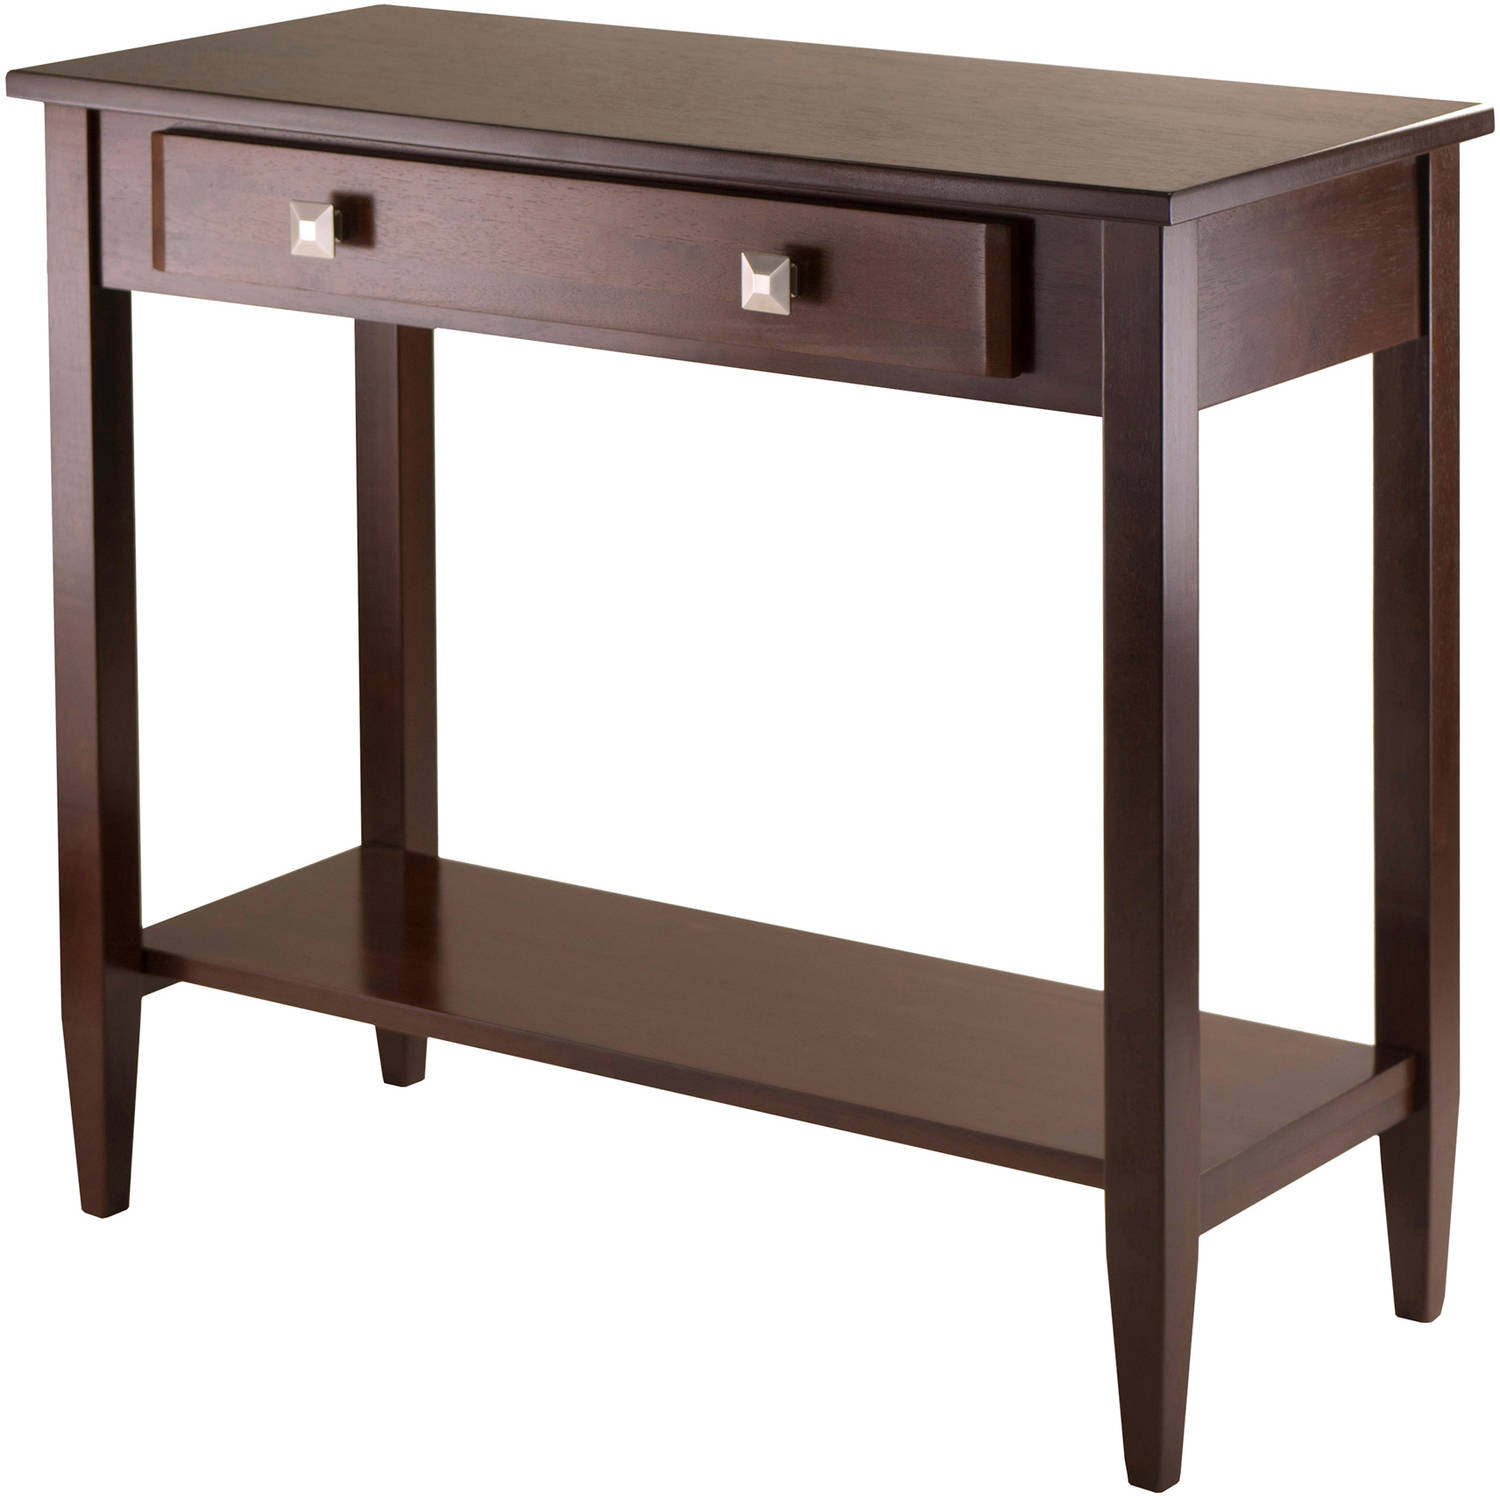 Charming Richmond Hall Console Table, Antique Walnut